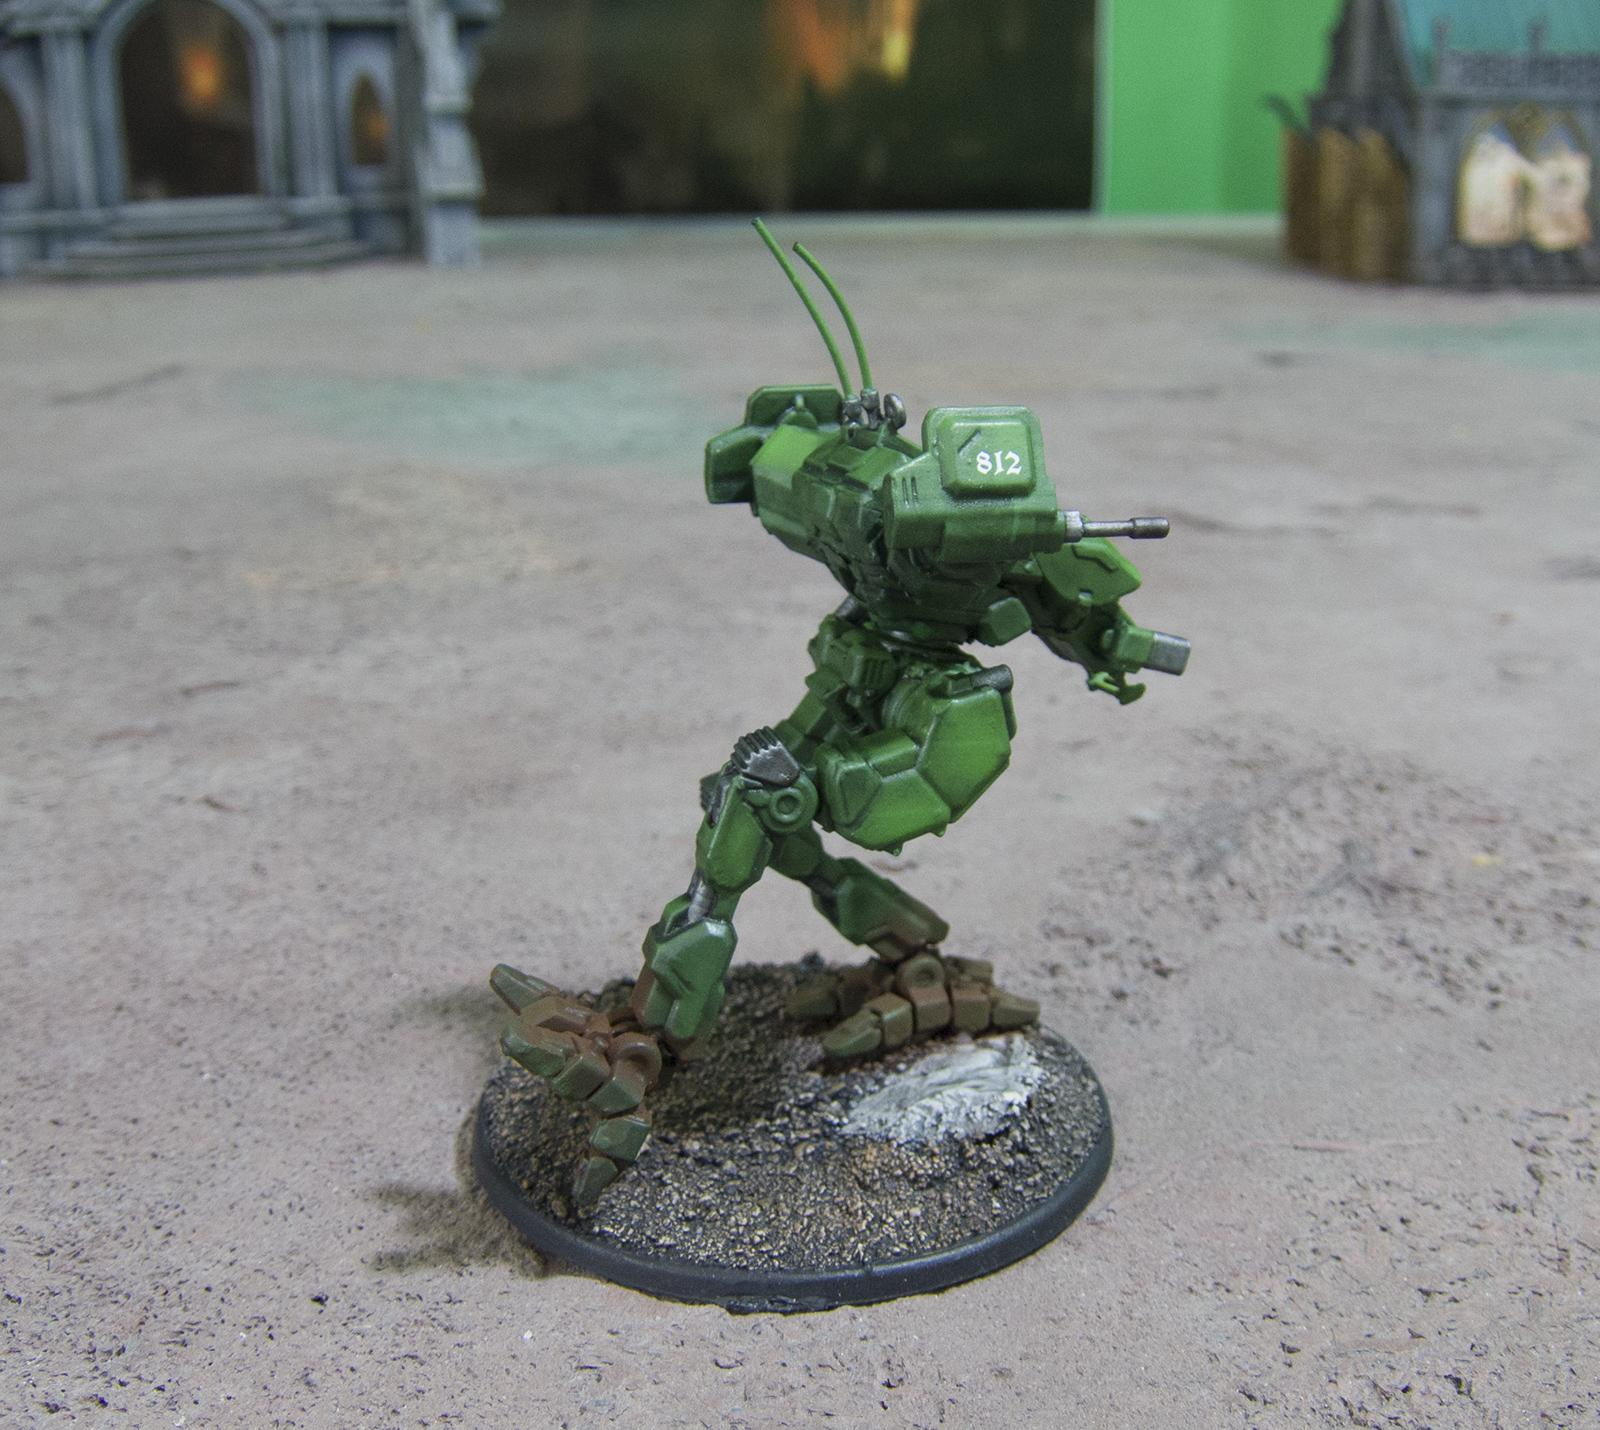 Adventures in 3D printing - Currently doing: Battlemechs